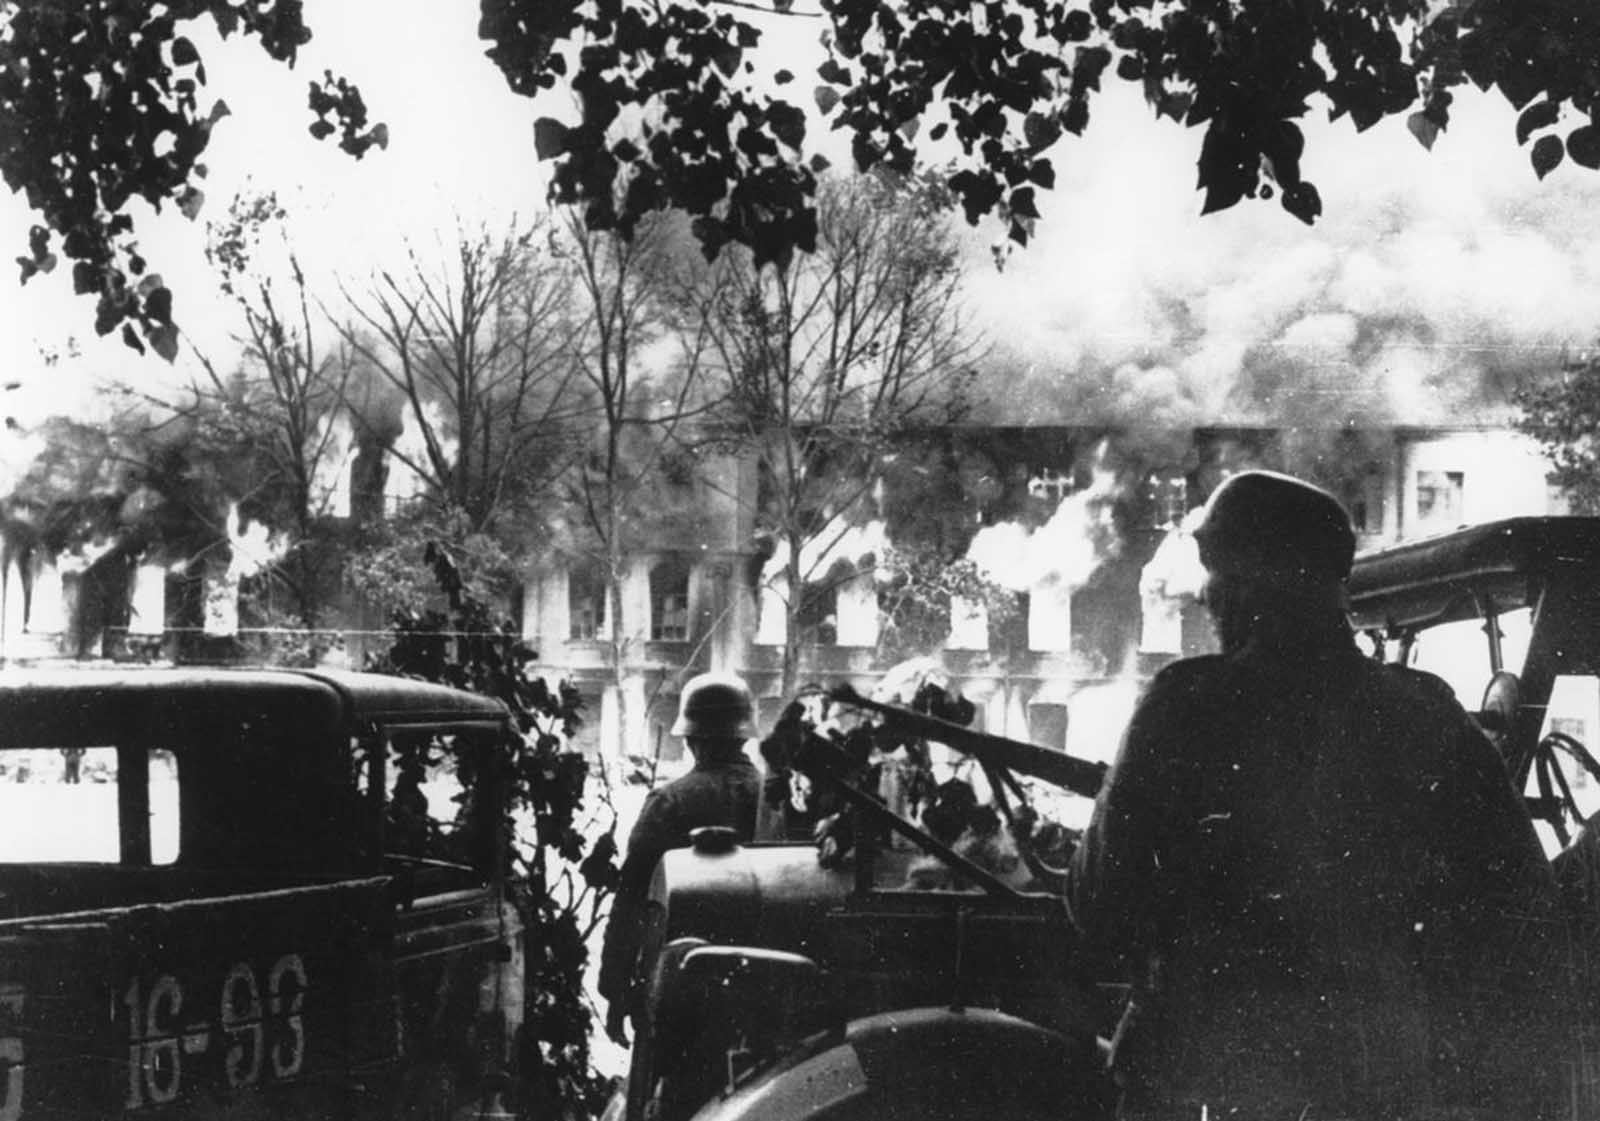 Flames shoot high from burning buildings in the background as German troops enter the city of Smolensk, in the central Soviet Union, during their offensive drive onto the capital Moscow, in August of 1941.